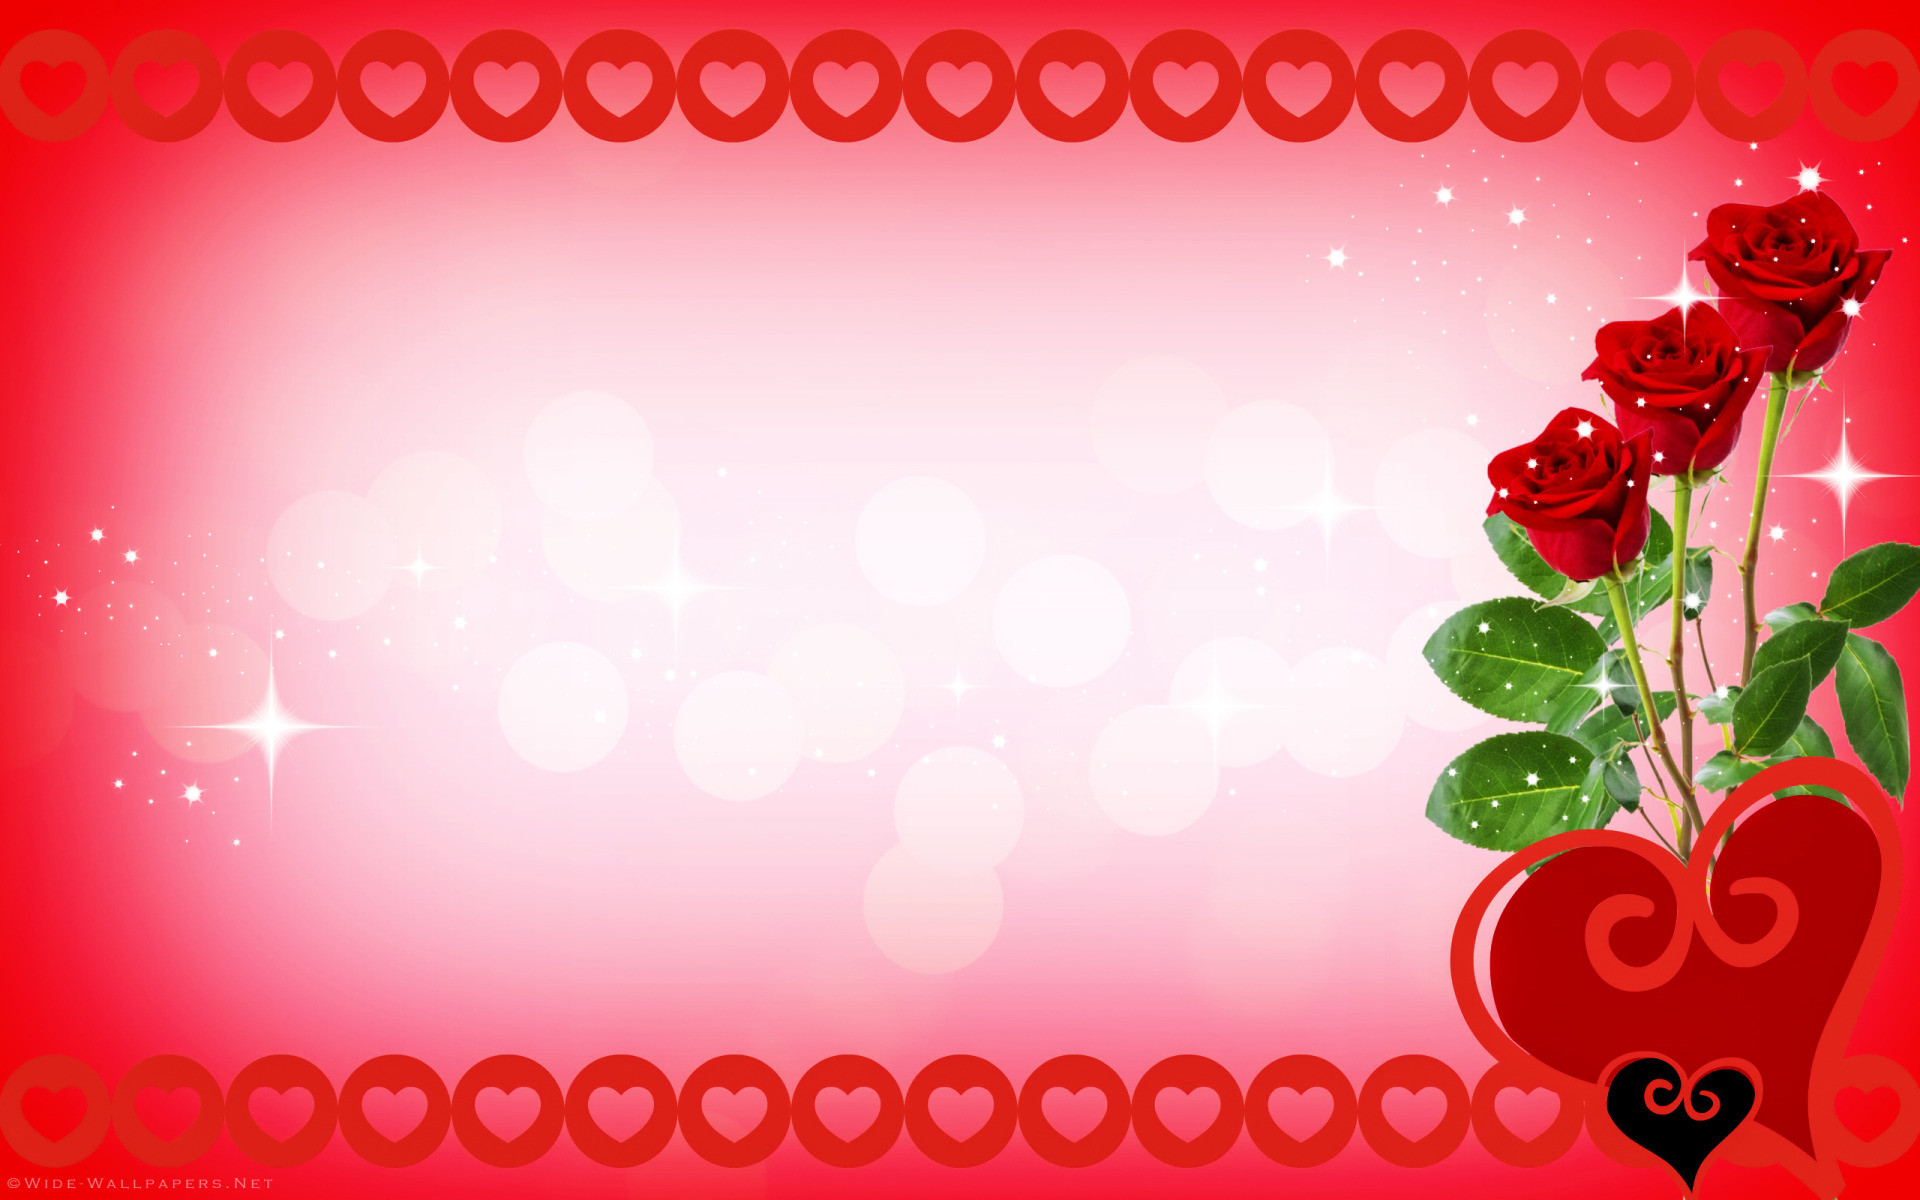 2560x1600 Lovely Pink Roses HD Wallpaper Love Romance Rose Hearts Quotes Wallpapers Pictures Photos Images Download Desktop